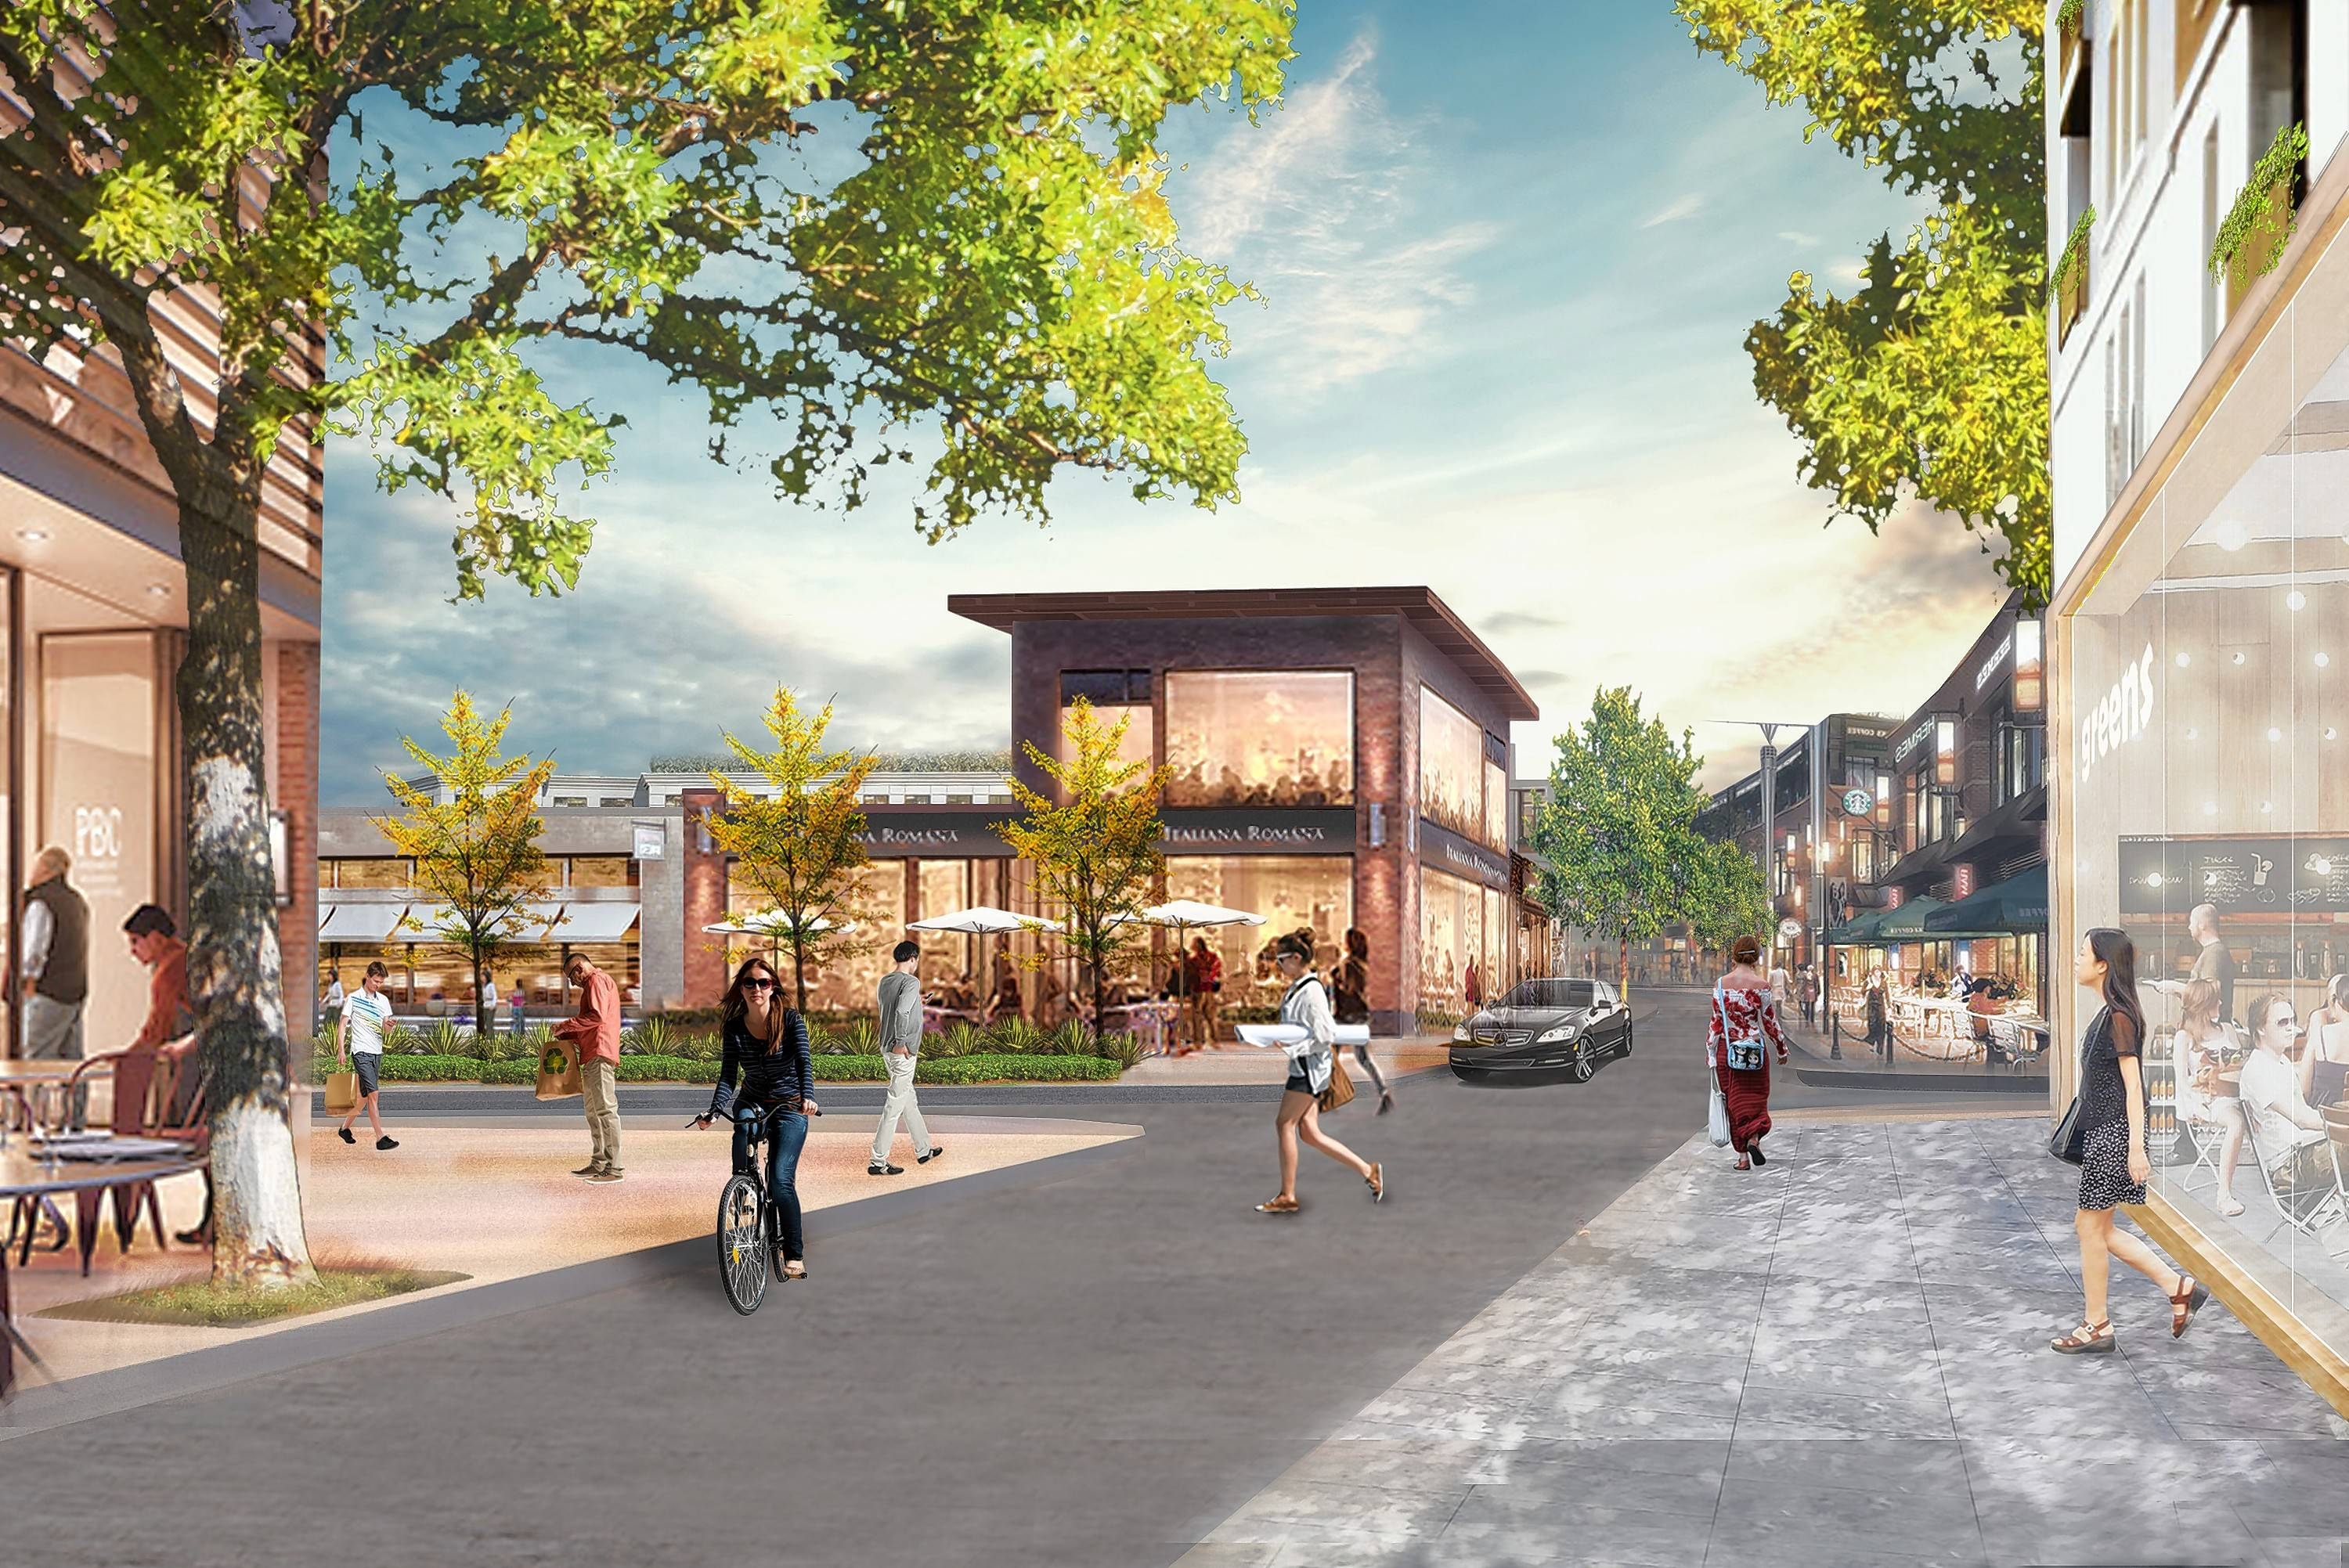 Chase Plaza would be modernized into a retail plaza and office park under plans unveiled Thursday by Buffalo Grove planners and consultants.